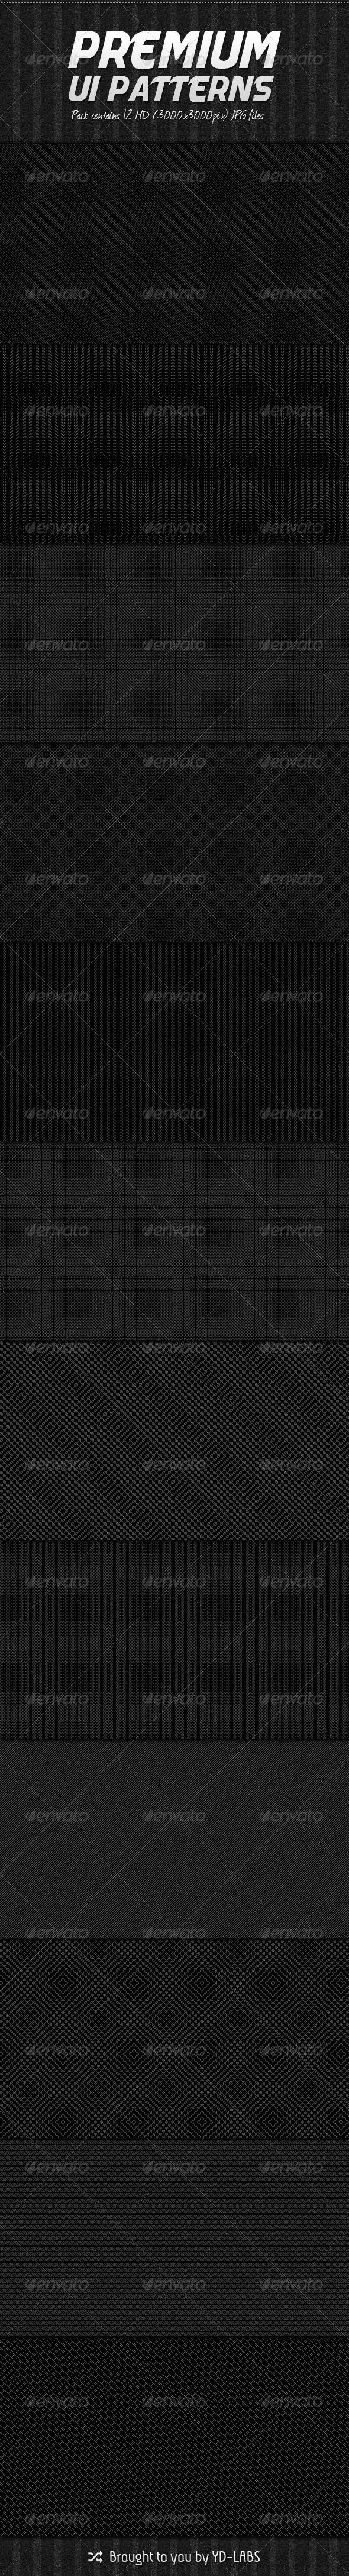 Graphic River 12 Premium Patterns Graphics -  Backgrounds  Patterns 1566851